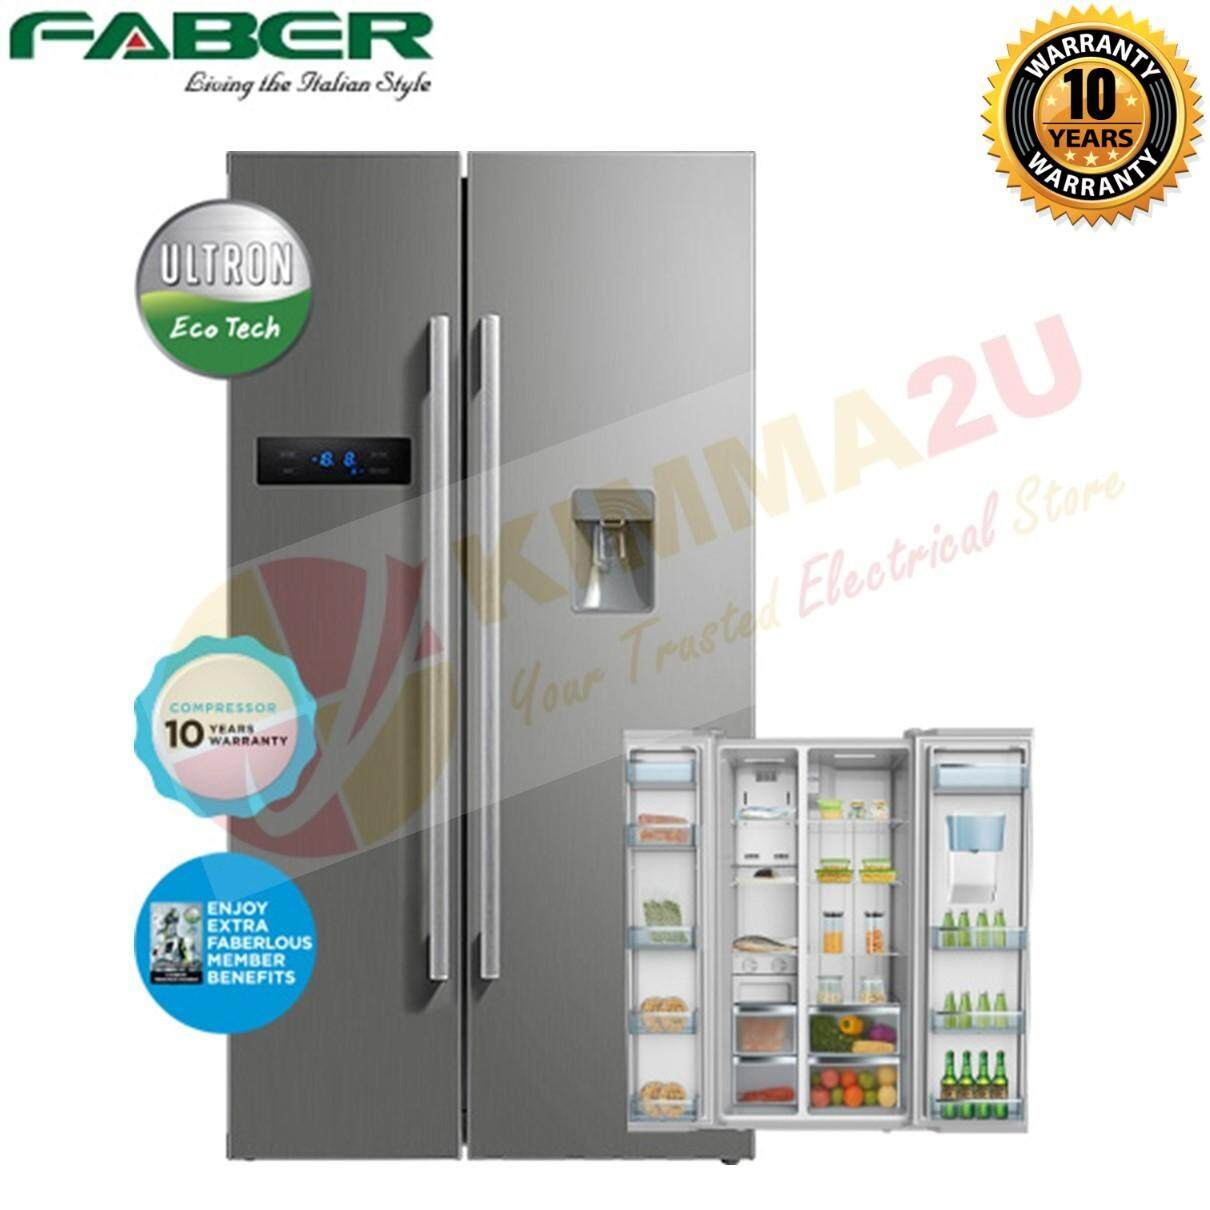 FABER 584L 2-Door Side by Side Fridge Refrigerator FRIGOR 699 w Water Dispenser *LARGER THAN RS54N3003SL